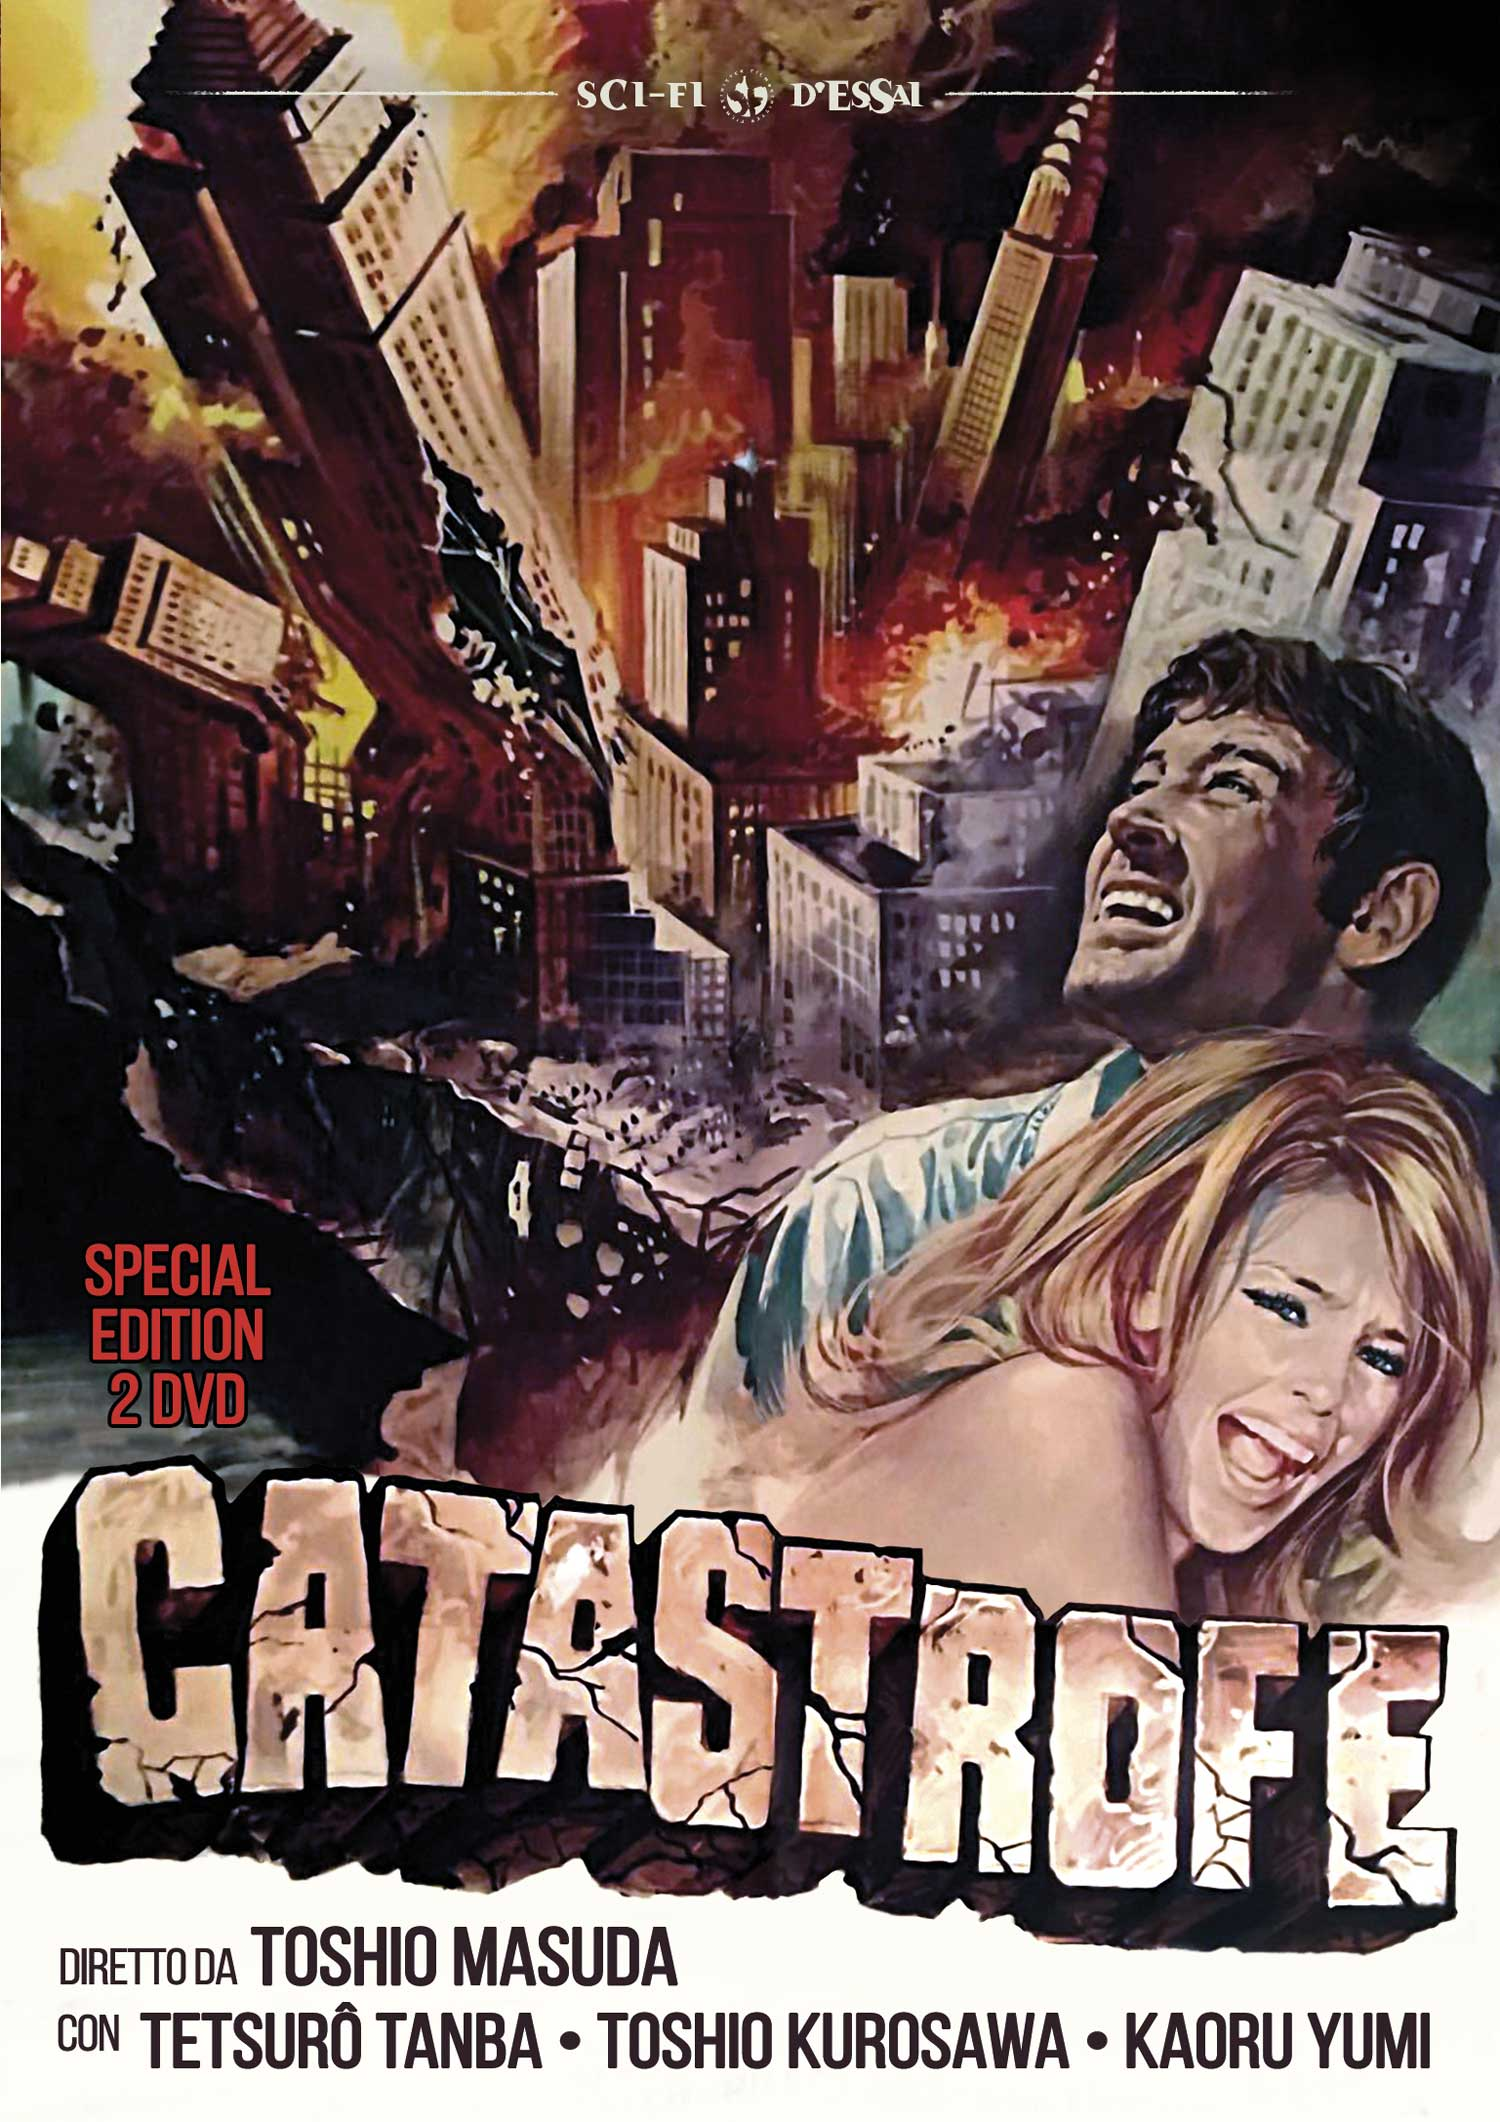 CATASTROFE (SPECIAL EDITION) (2 DVD) (DVD)